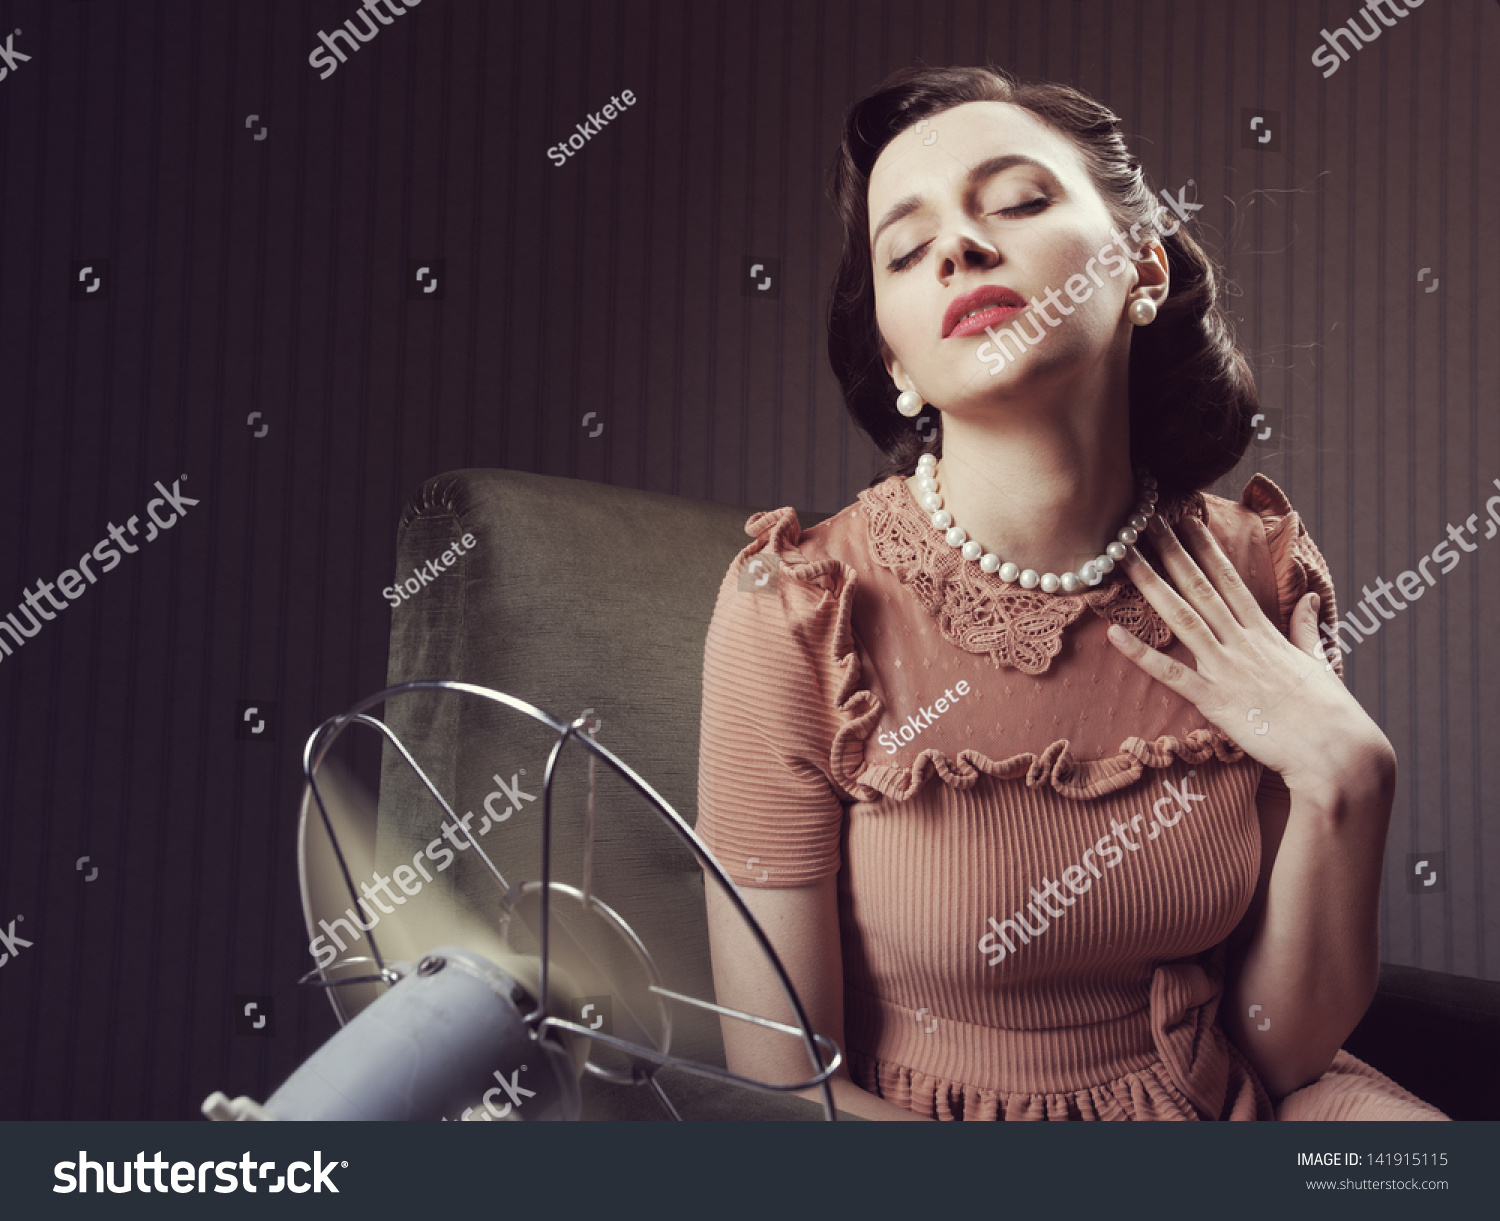 Cooling Off With Fan : Beautiful woman using fan cool off stock photo